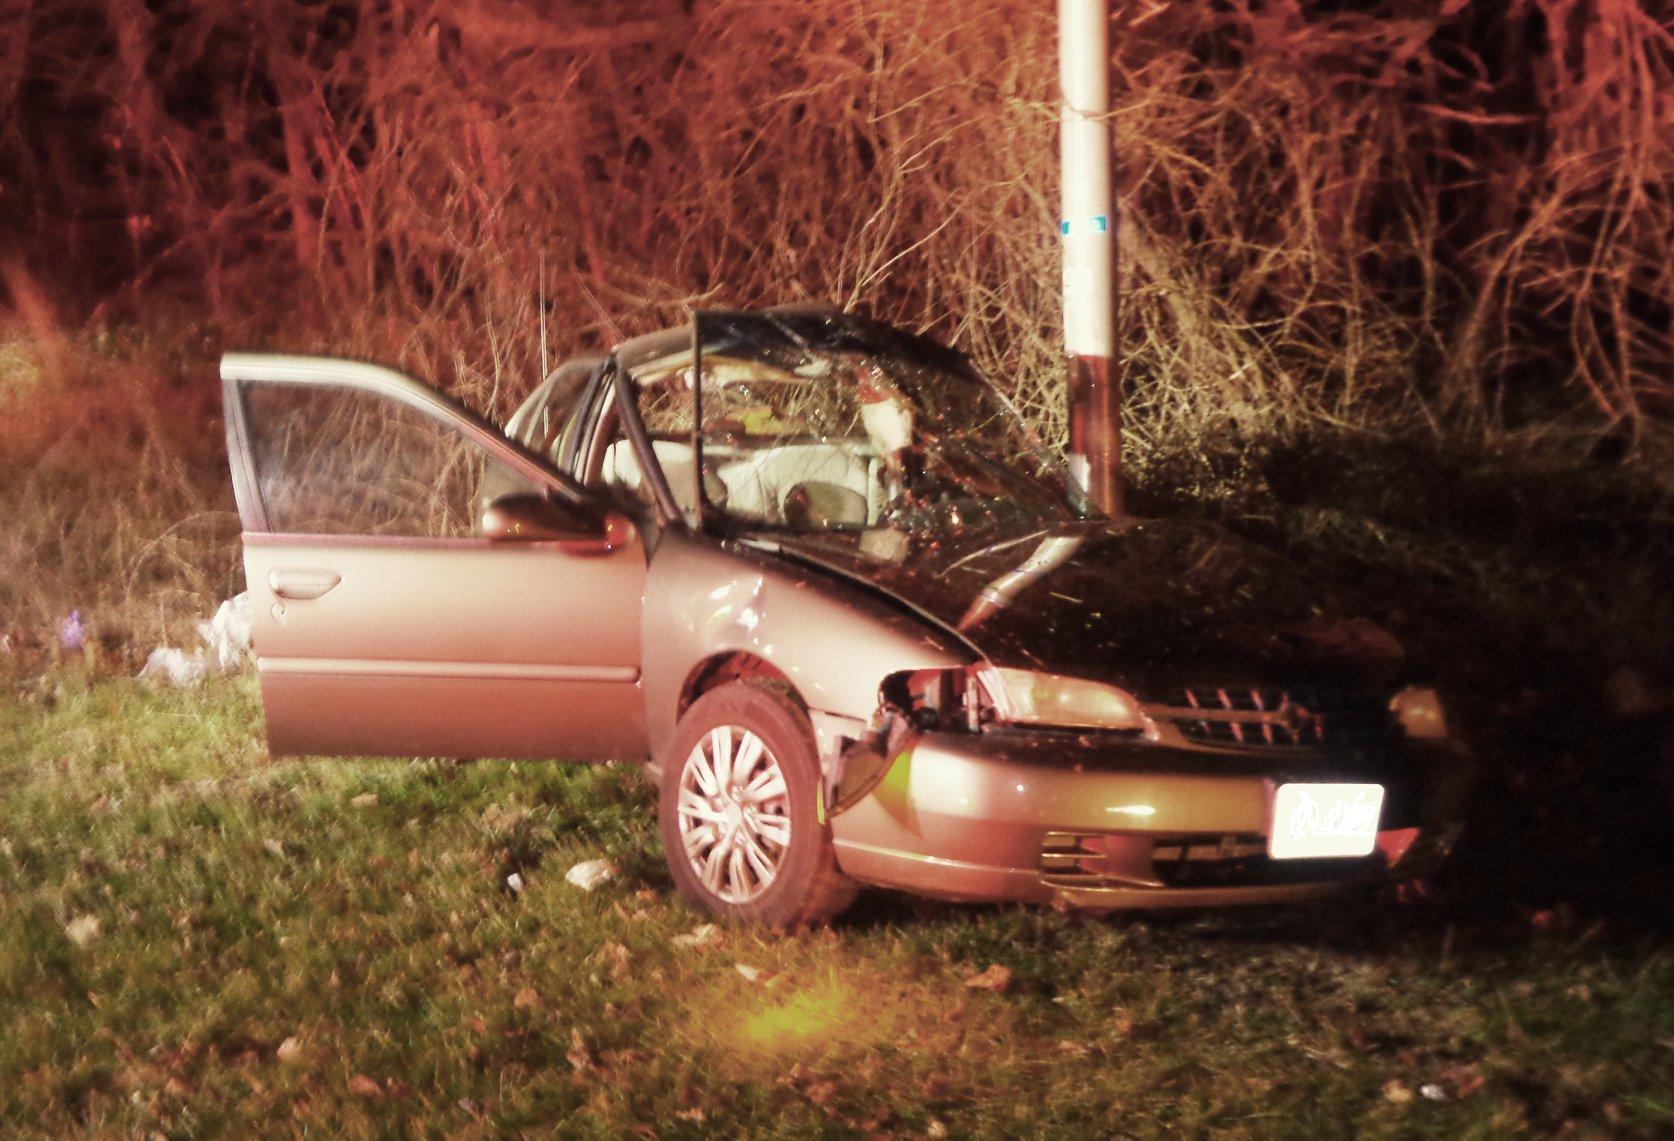 At least three people were seriously injured in a single-vehicle crash in Bedford last night. (PHOTO: Courtesy Bedford Fire Department)